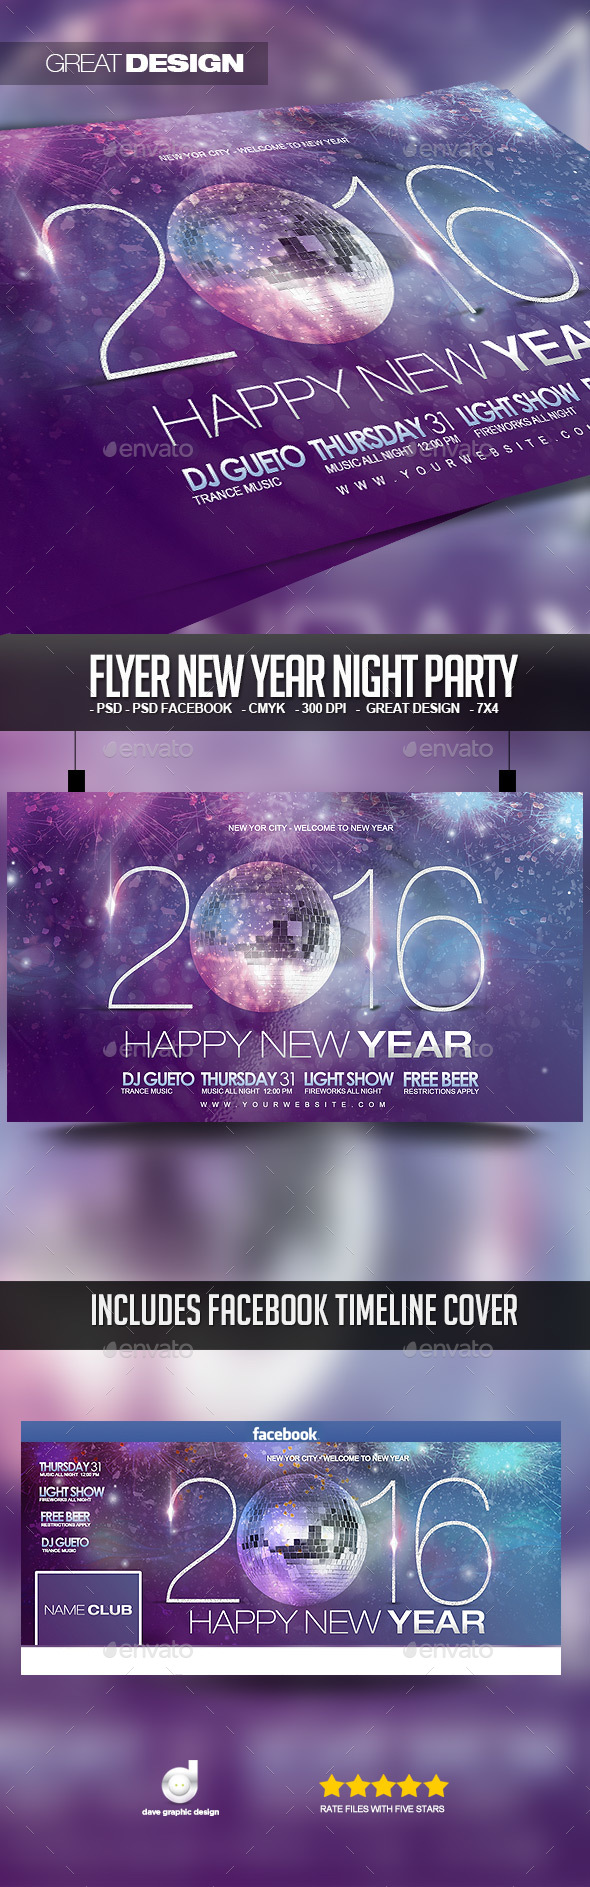 Flyer New Year Night Party - Events Flyers